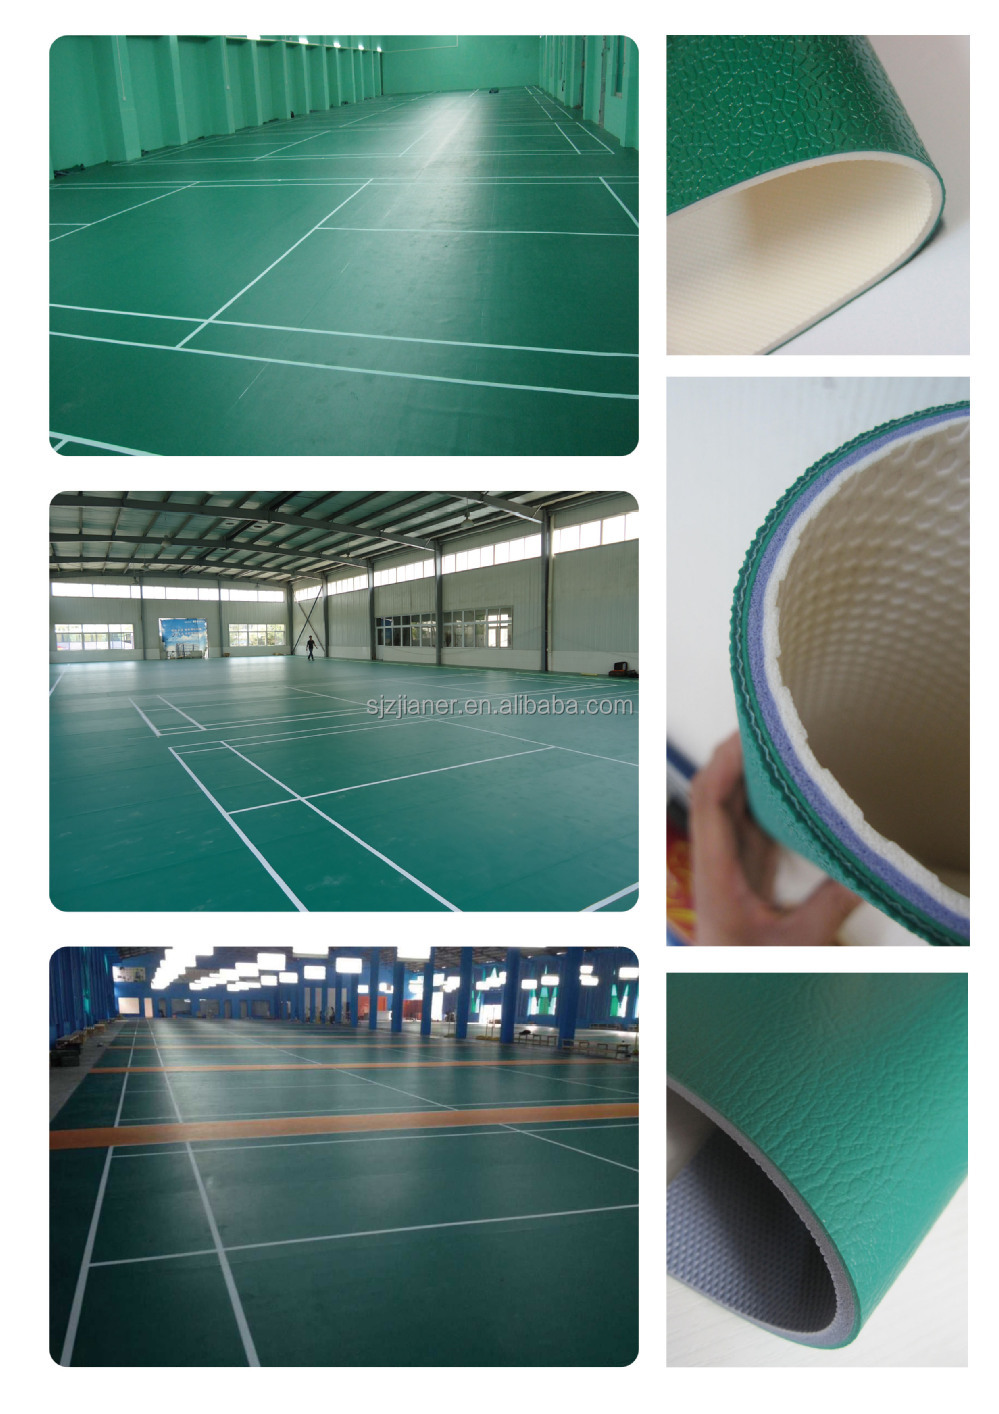 2017 hot selling pure pvc vinyl synthetic badminton court flooring